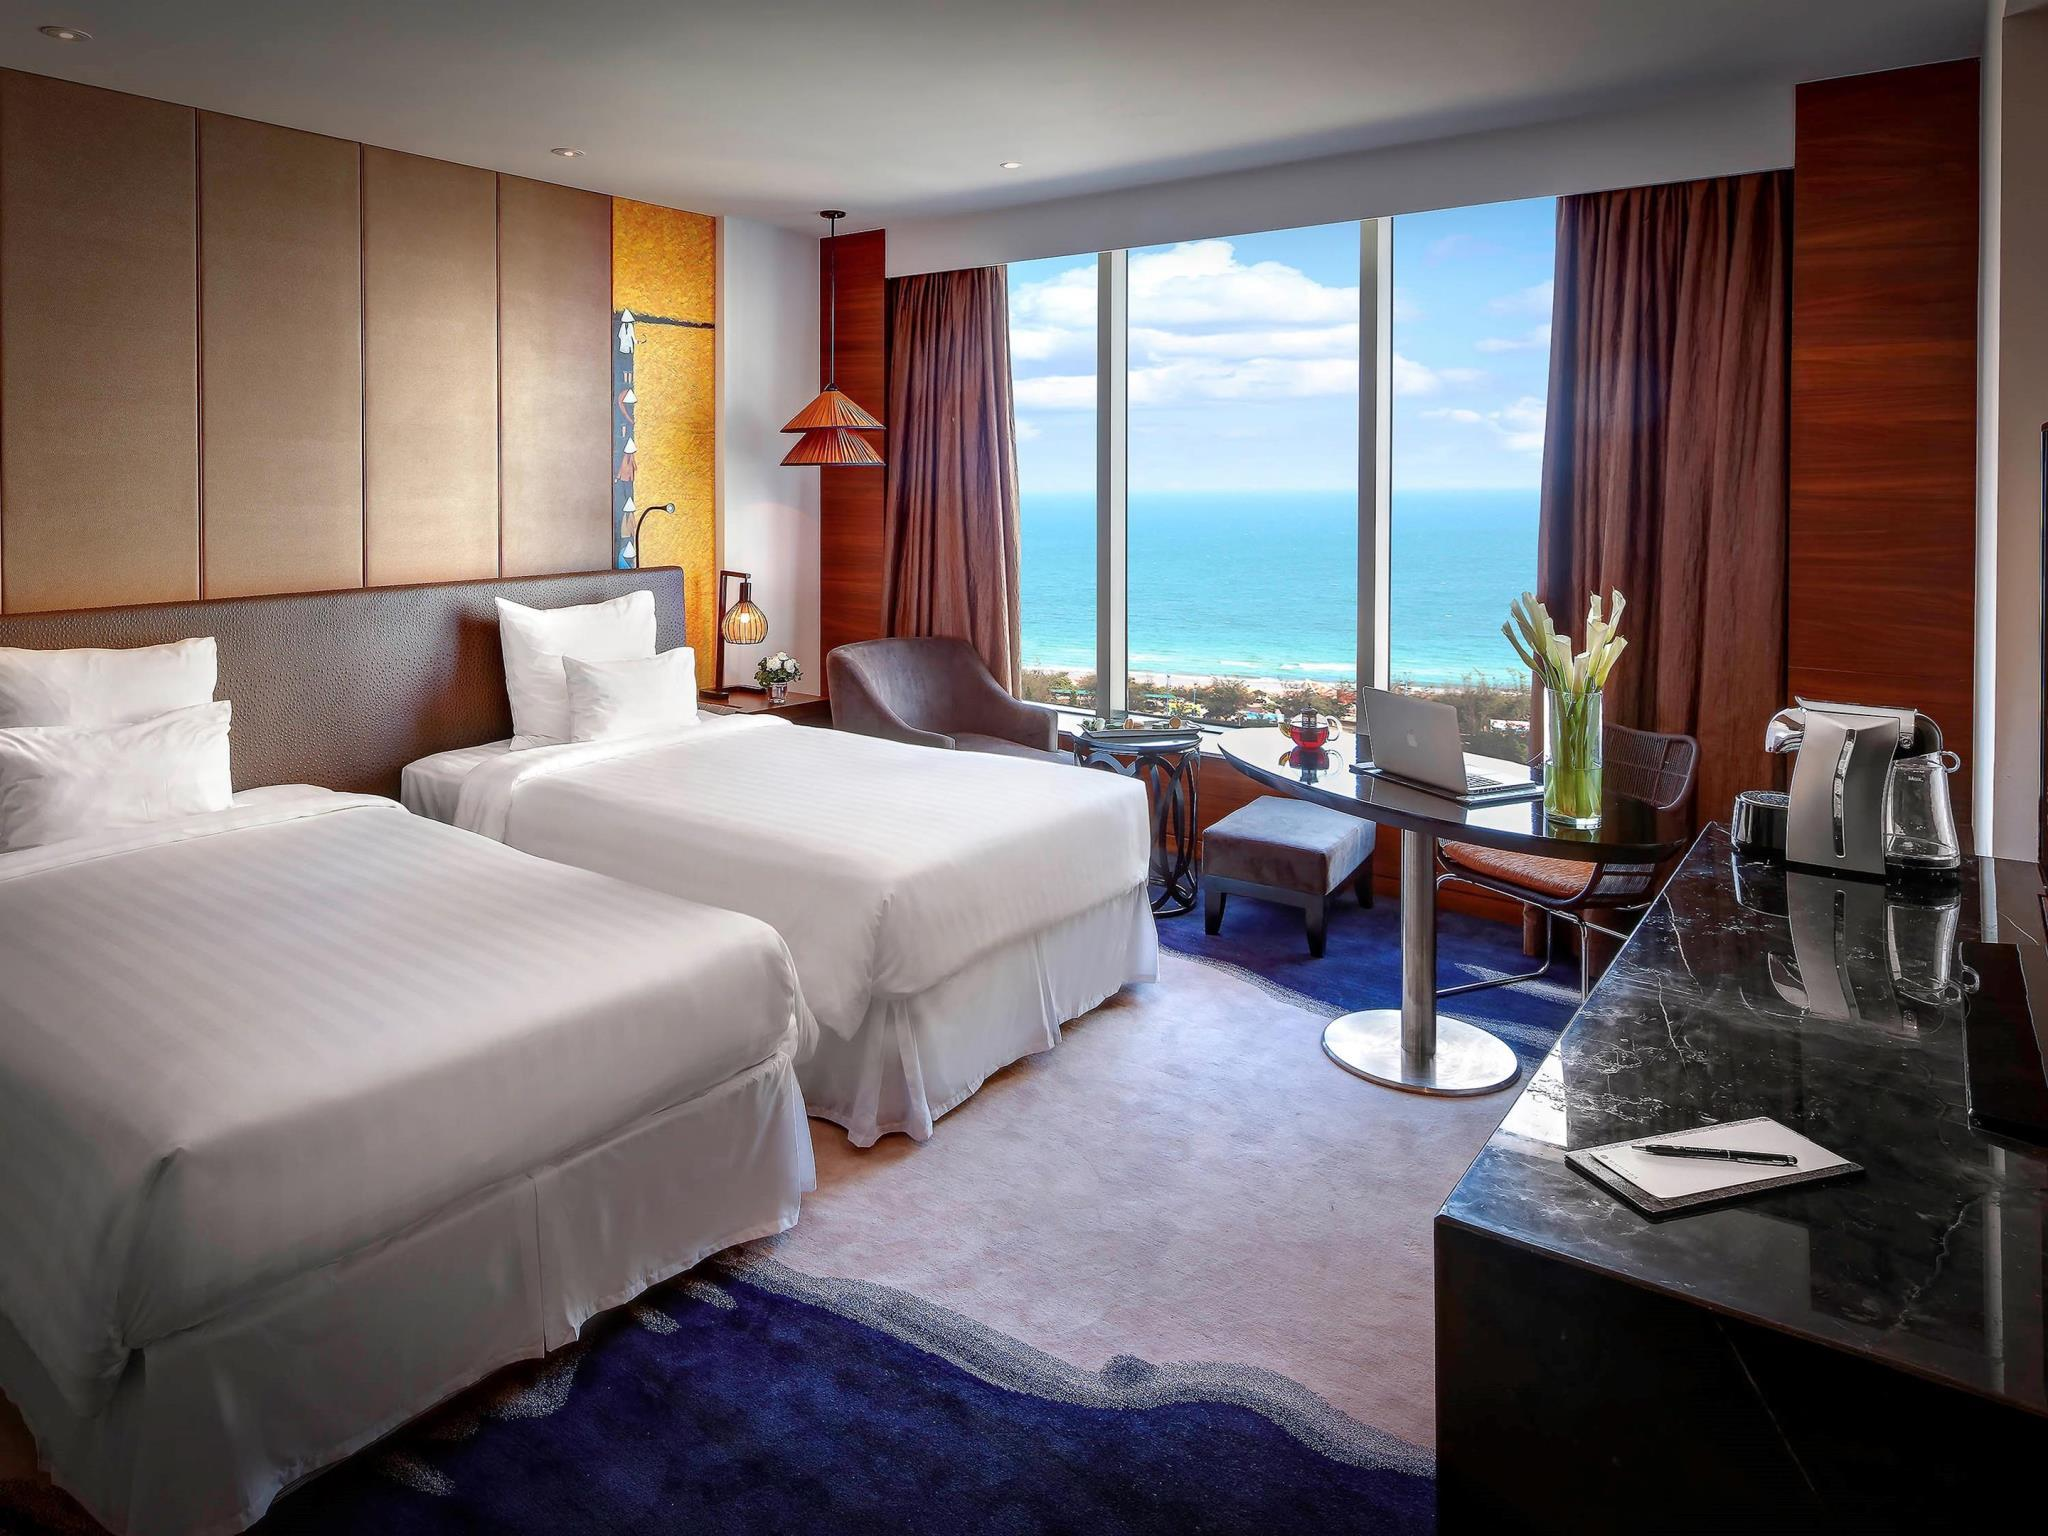 Deluxe Sea View Room with Twin Bed